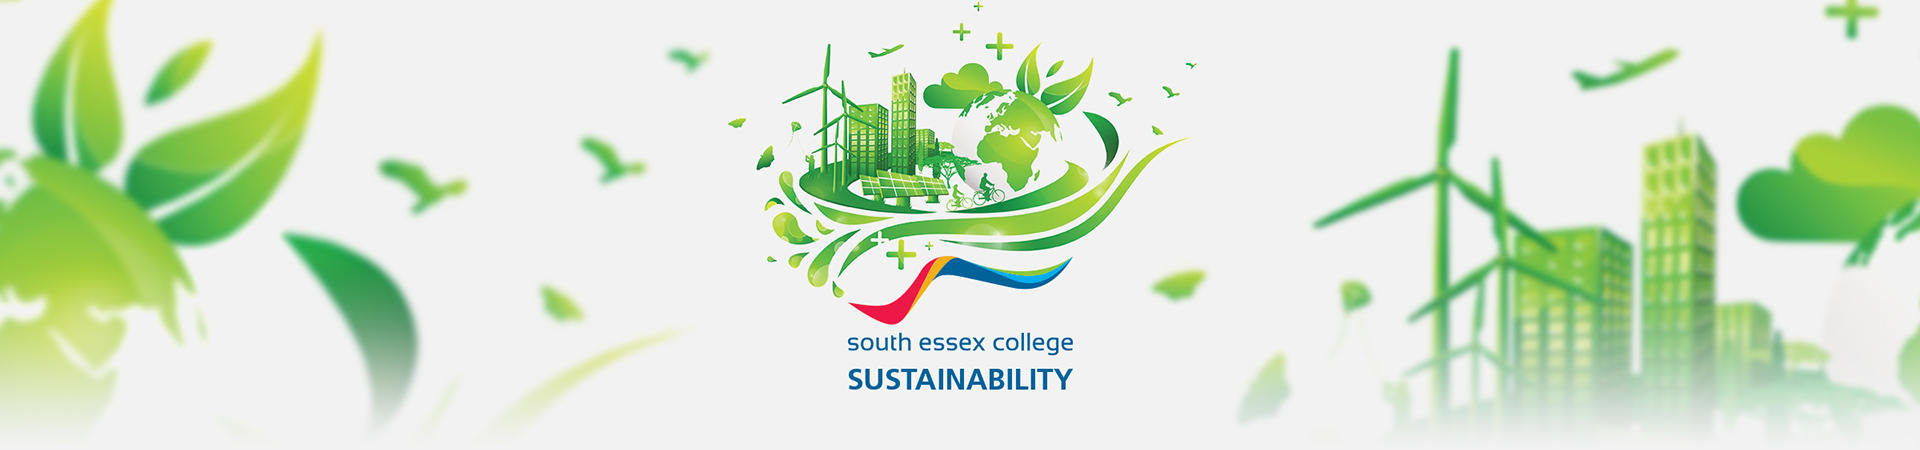 Sustainability South Essex College